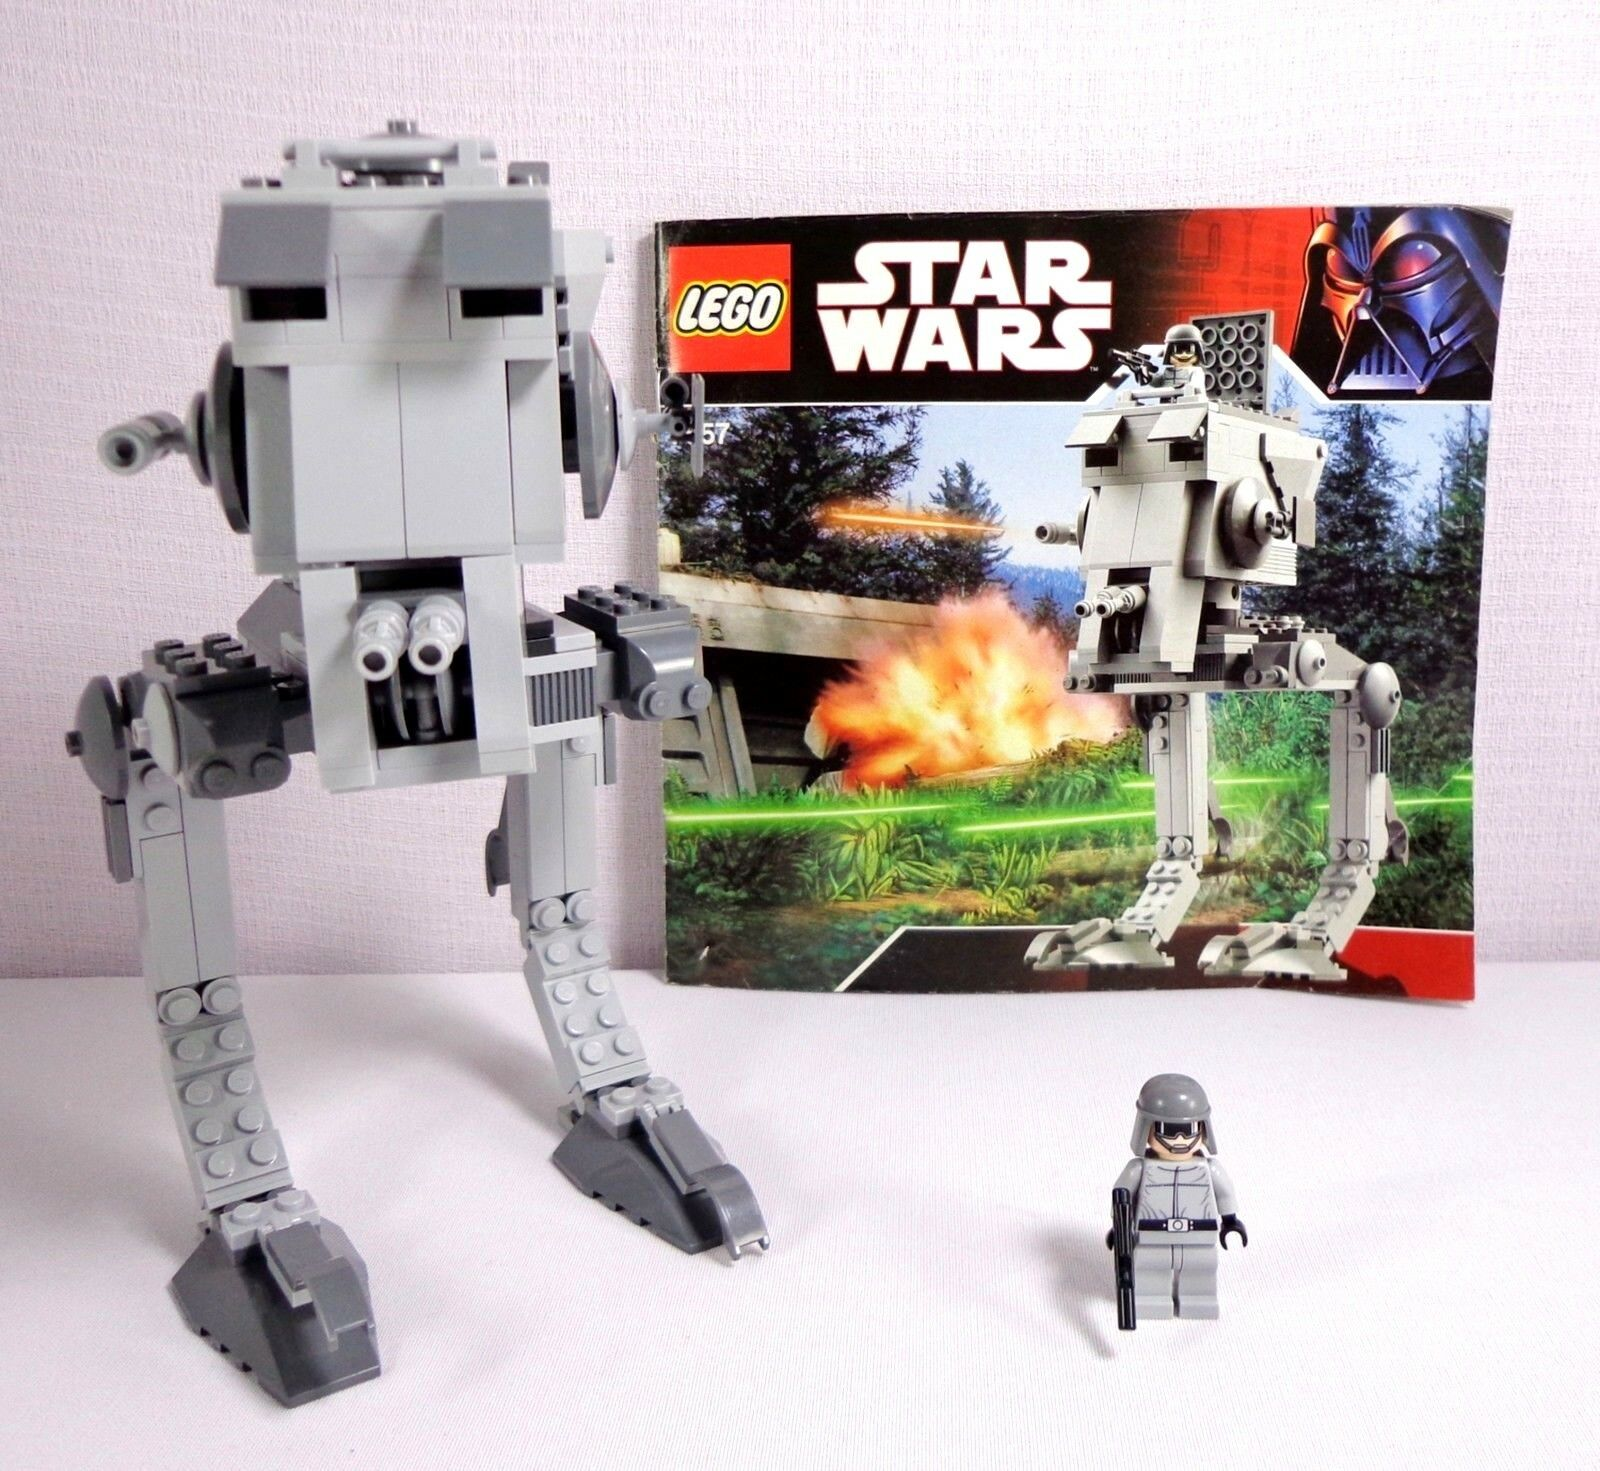 Lego Star Wars 7657 AT-ST Episode IV - VI Ep 4 5 6 Imperial Pilot Minifig